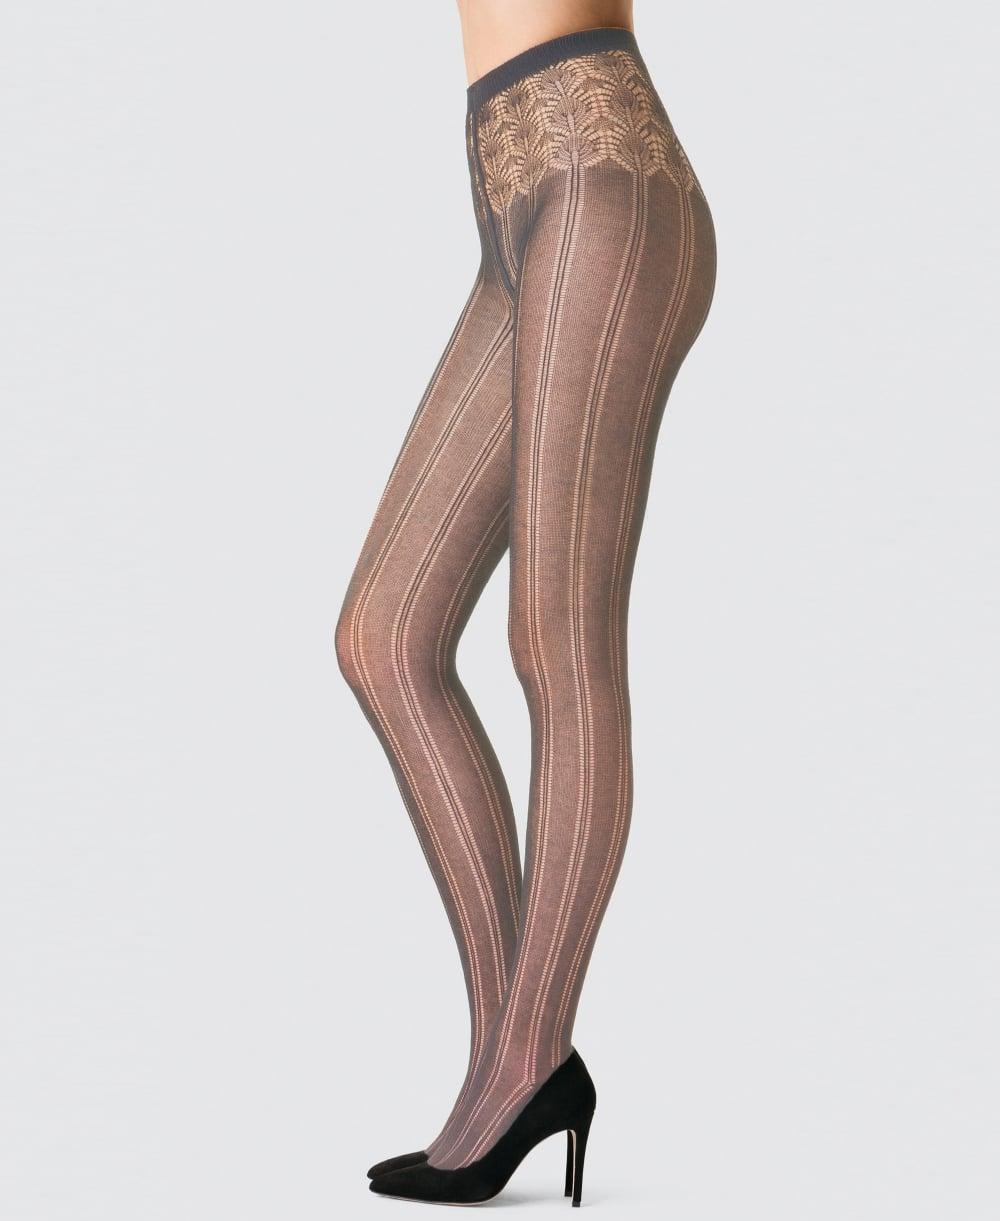 e29945fdecd Fogal Ihana Cotton Ajoure Tights - Tights from luxury-legs.com UK